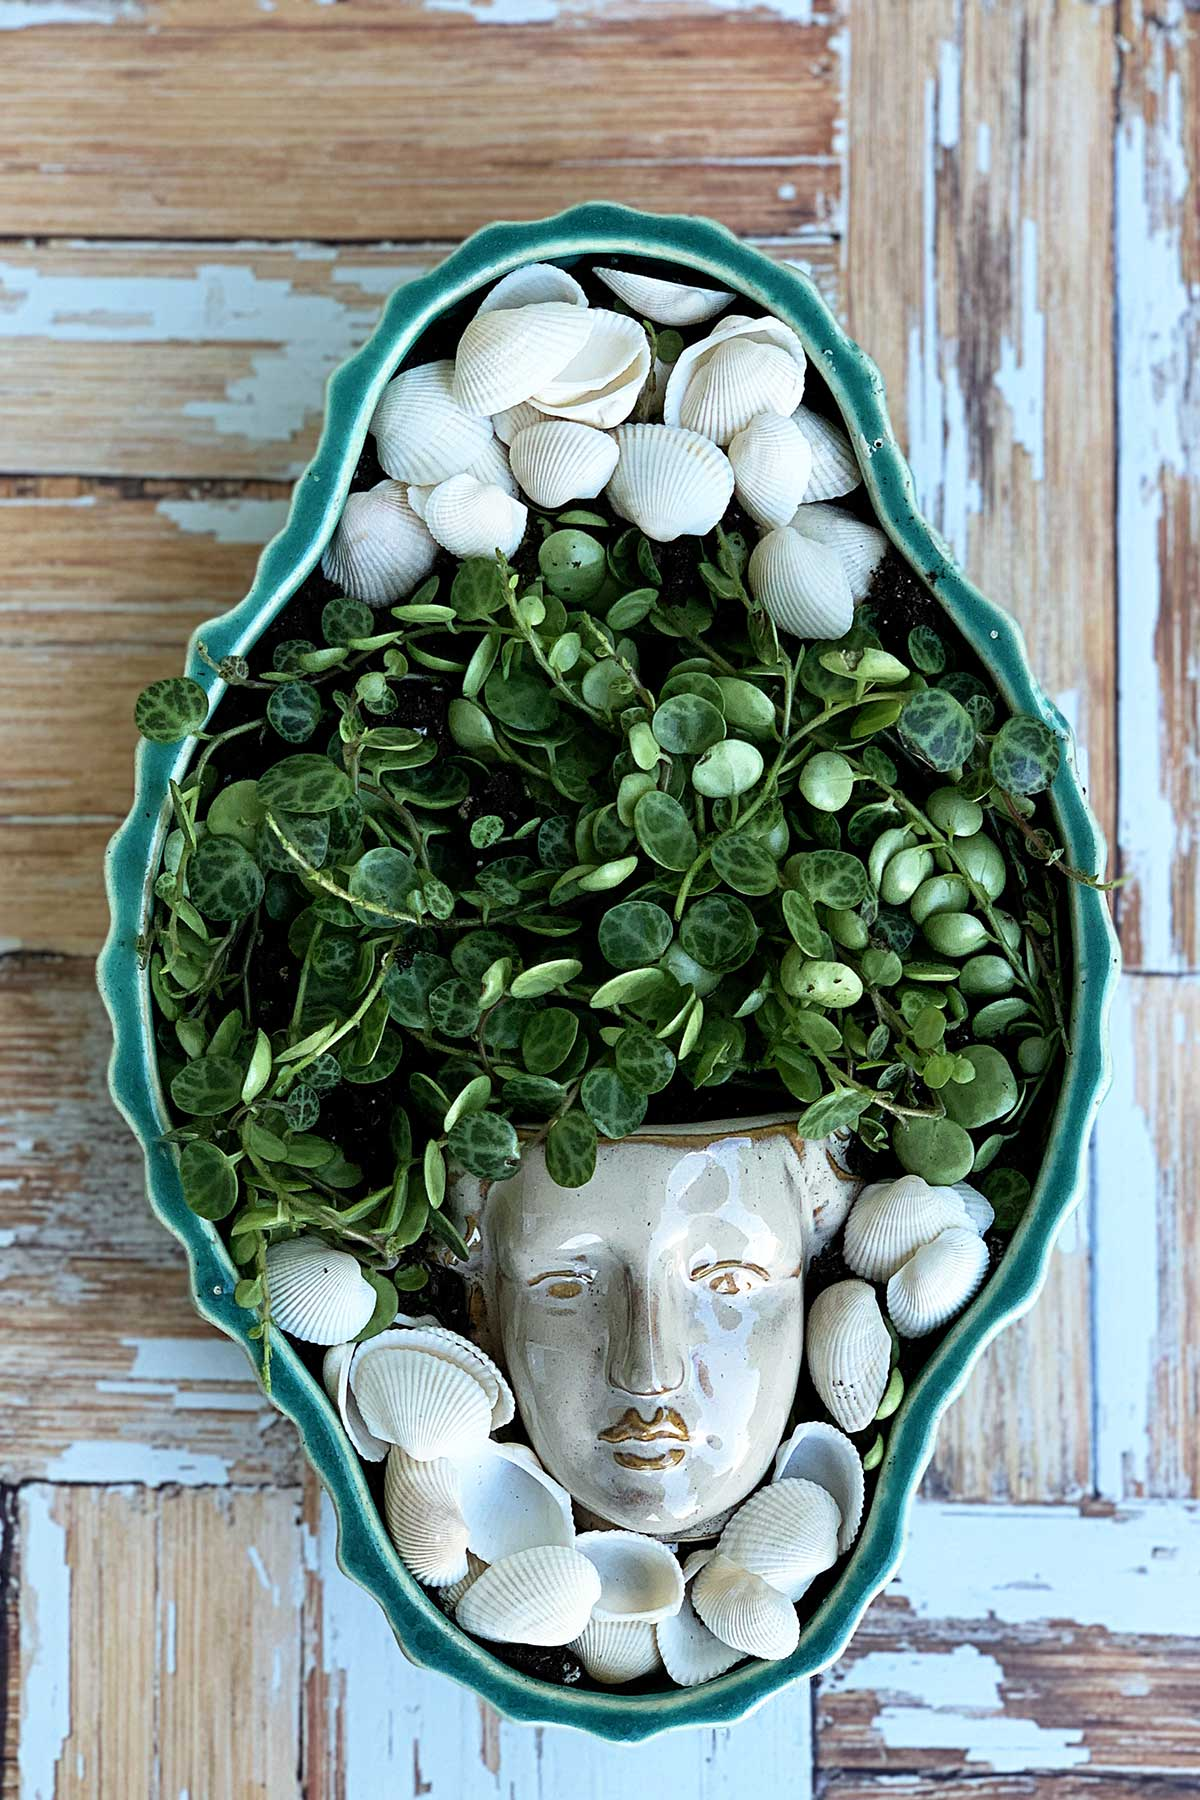 Shallow planted holding succulents coming out of a small head shaped planter.